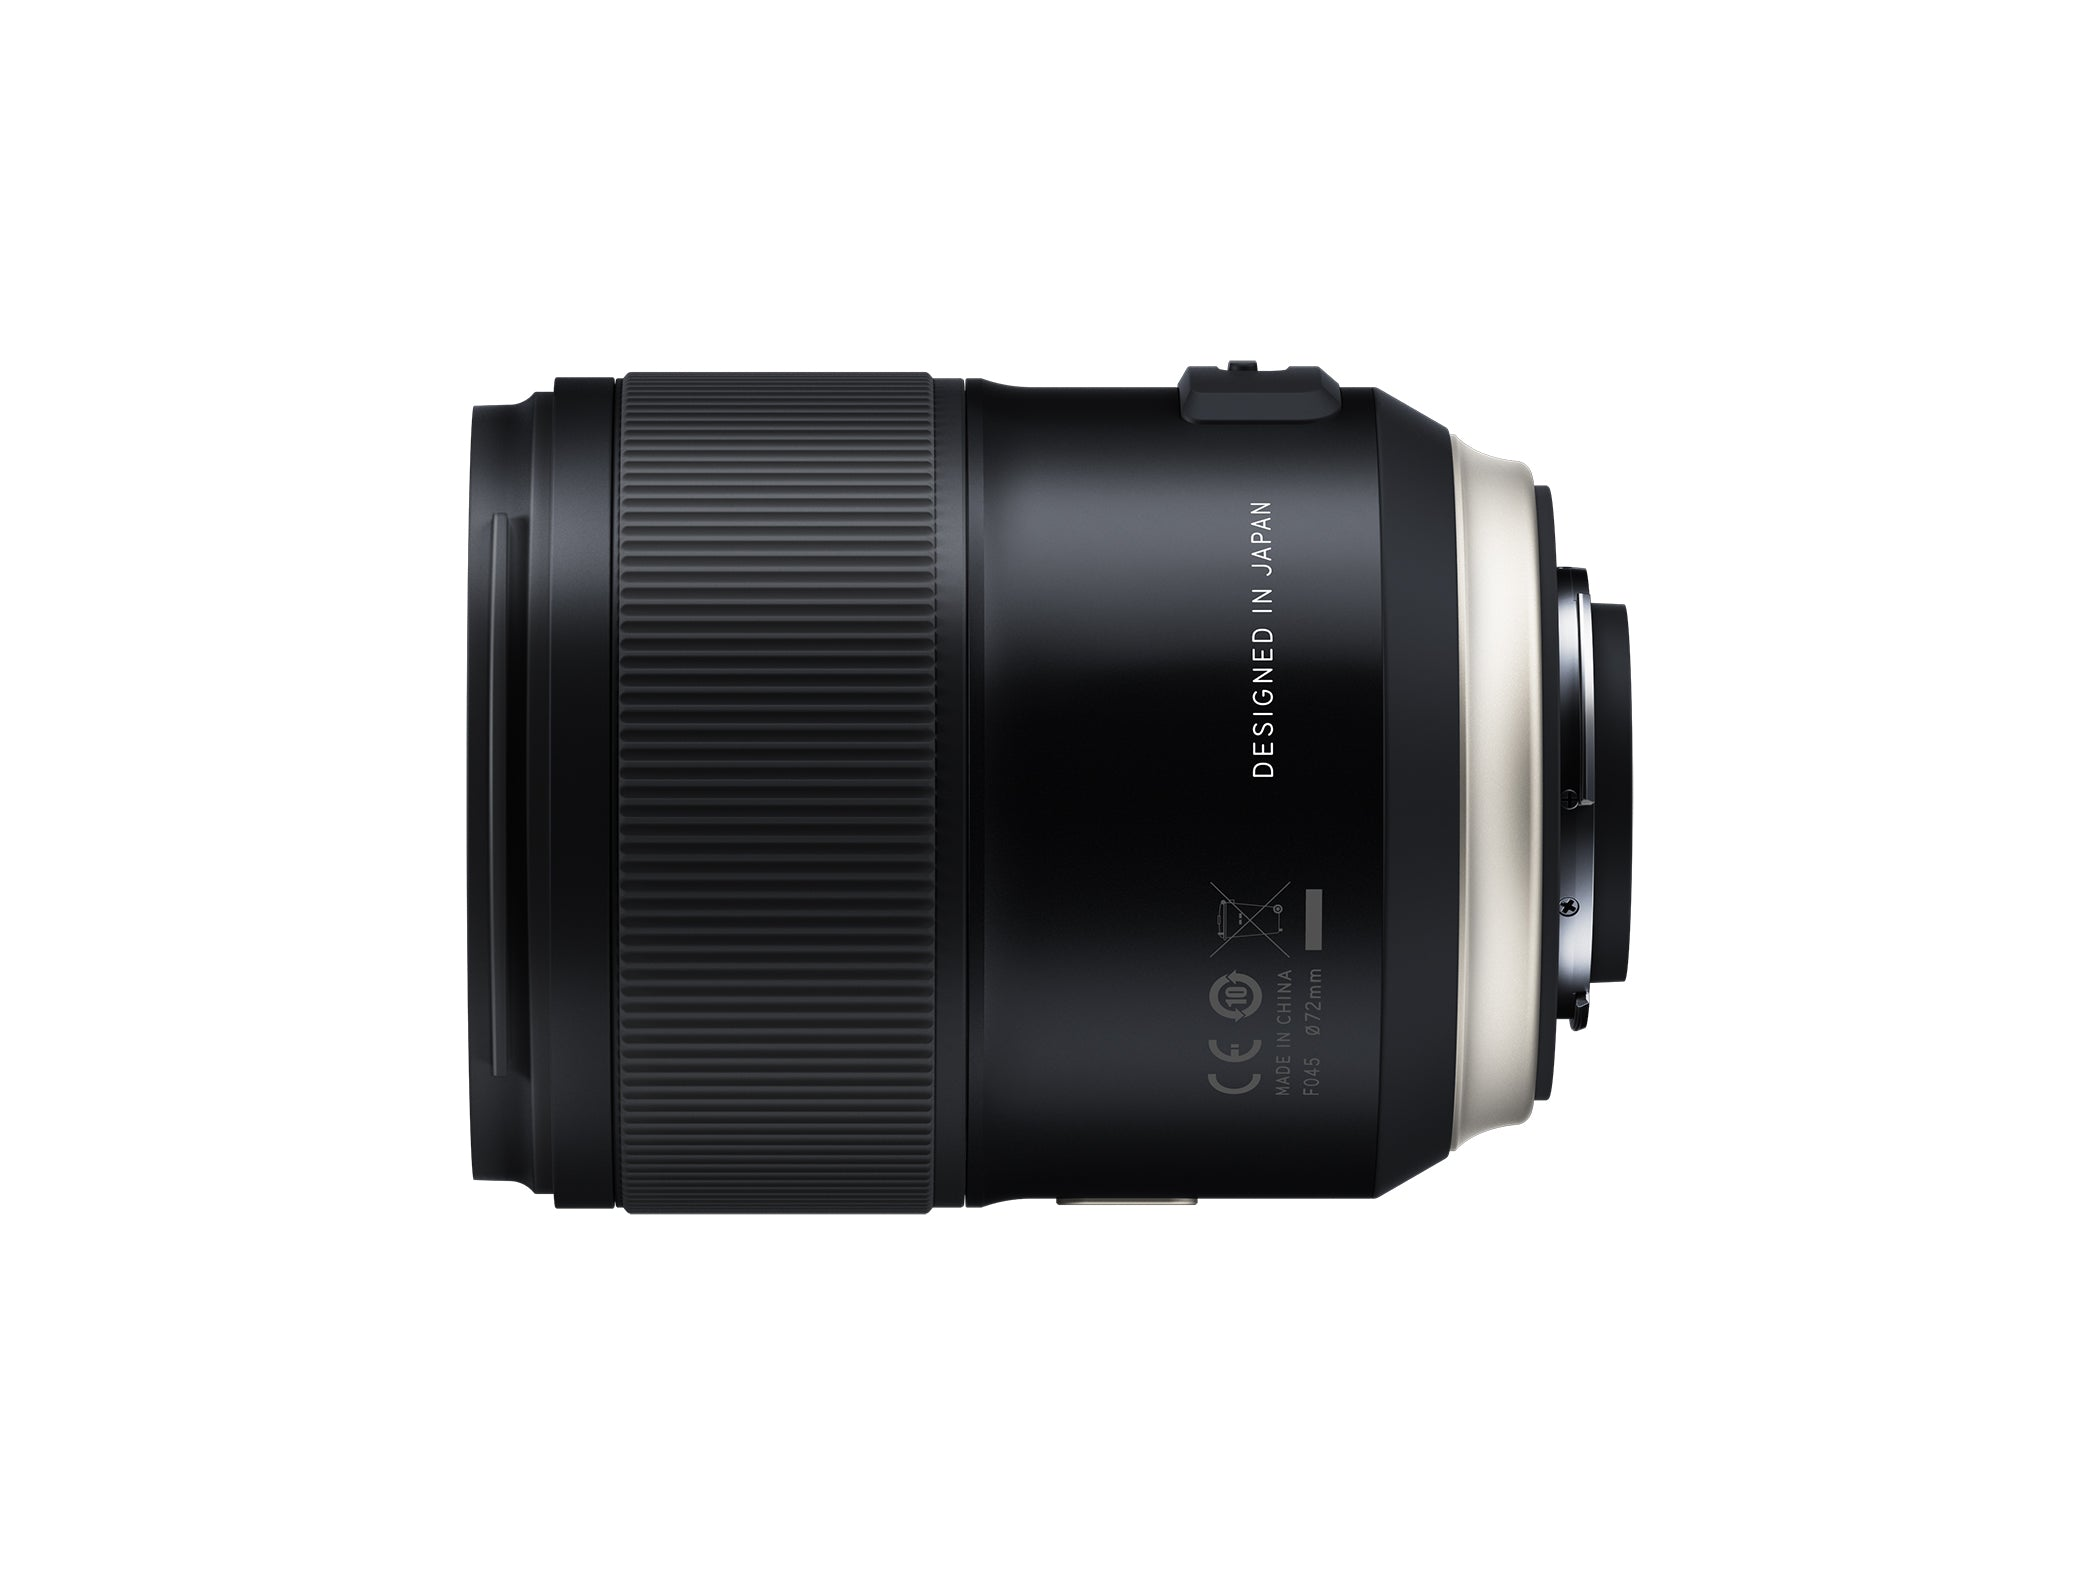 Tamron SP 35mm f/1.4 Di USD w/hood and pouch Nikon Mount AFF045N-700